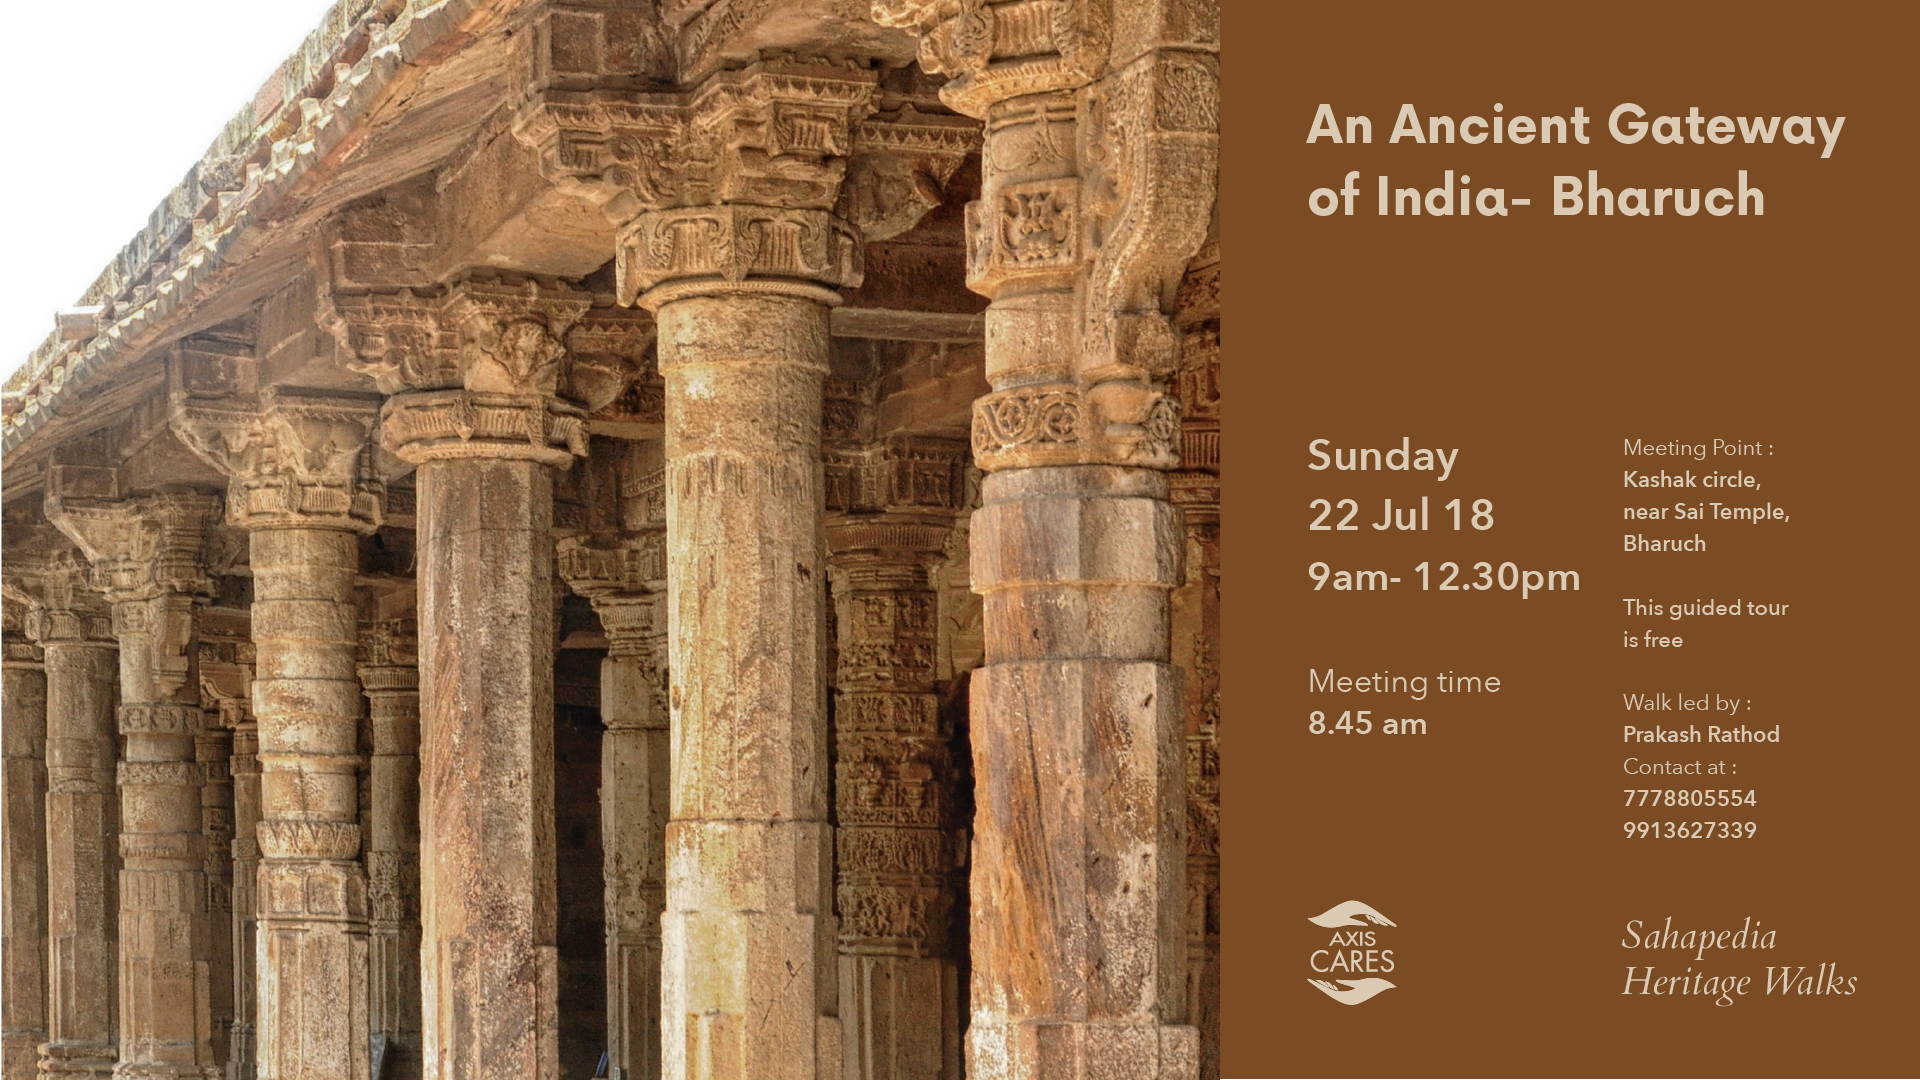 sahapedia heritage walk the ancient gateway of india bharuch